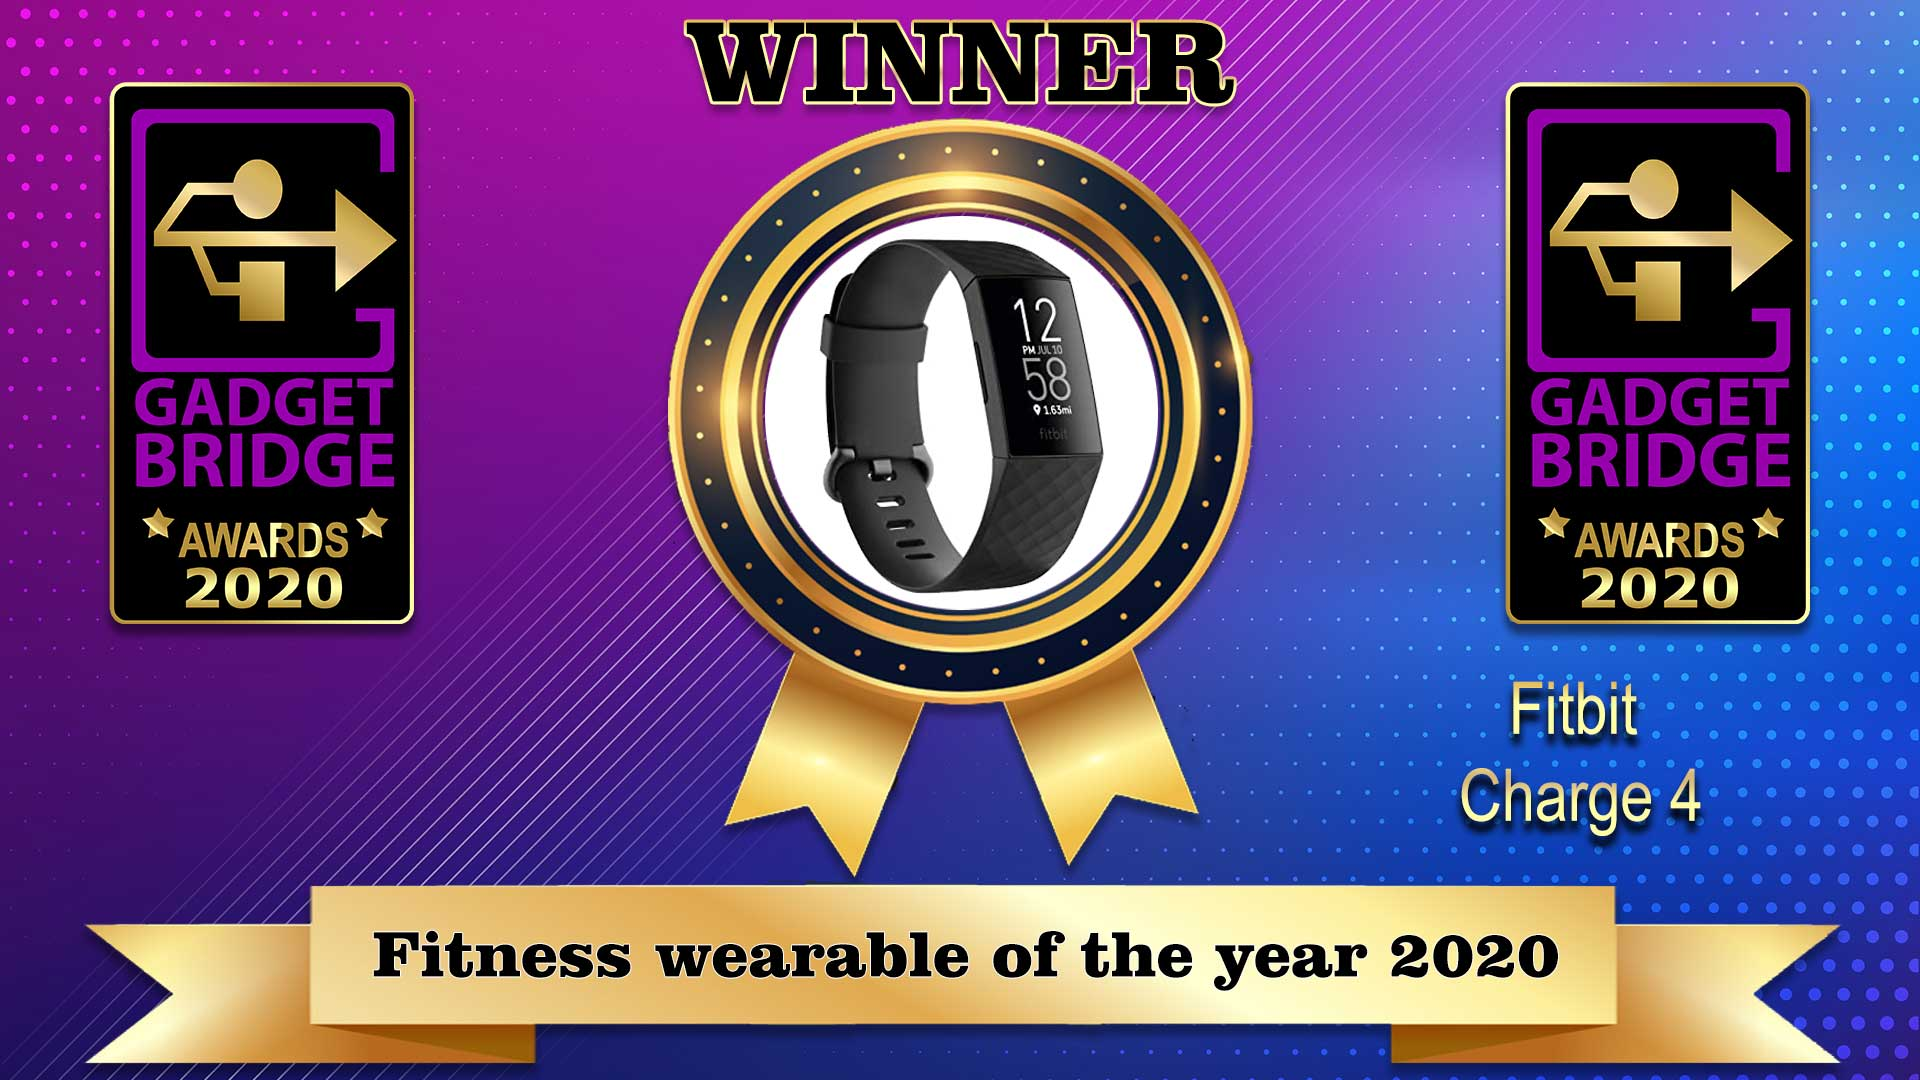 Fitness-wearable-of-the-year-2020